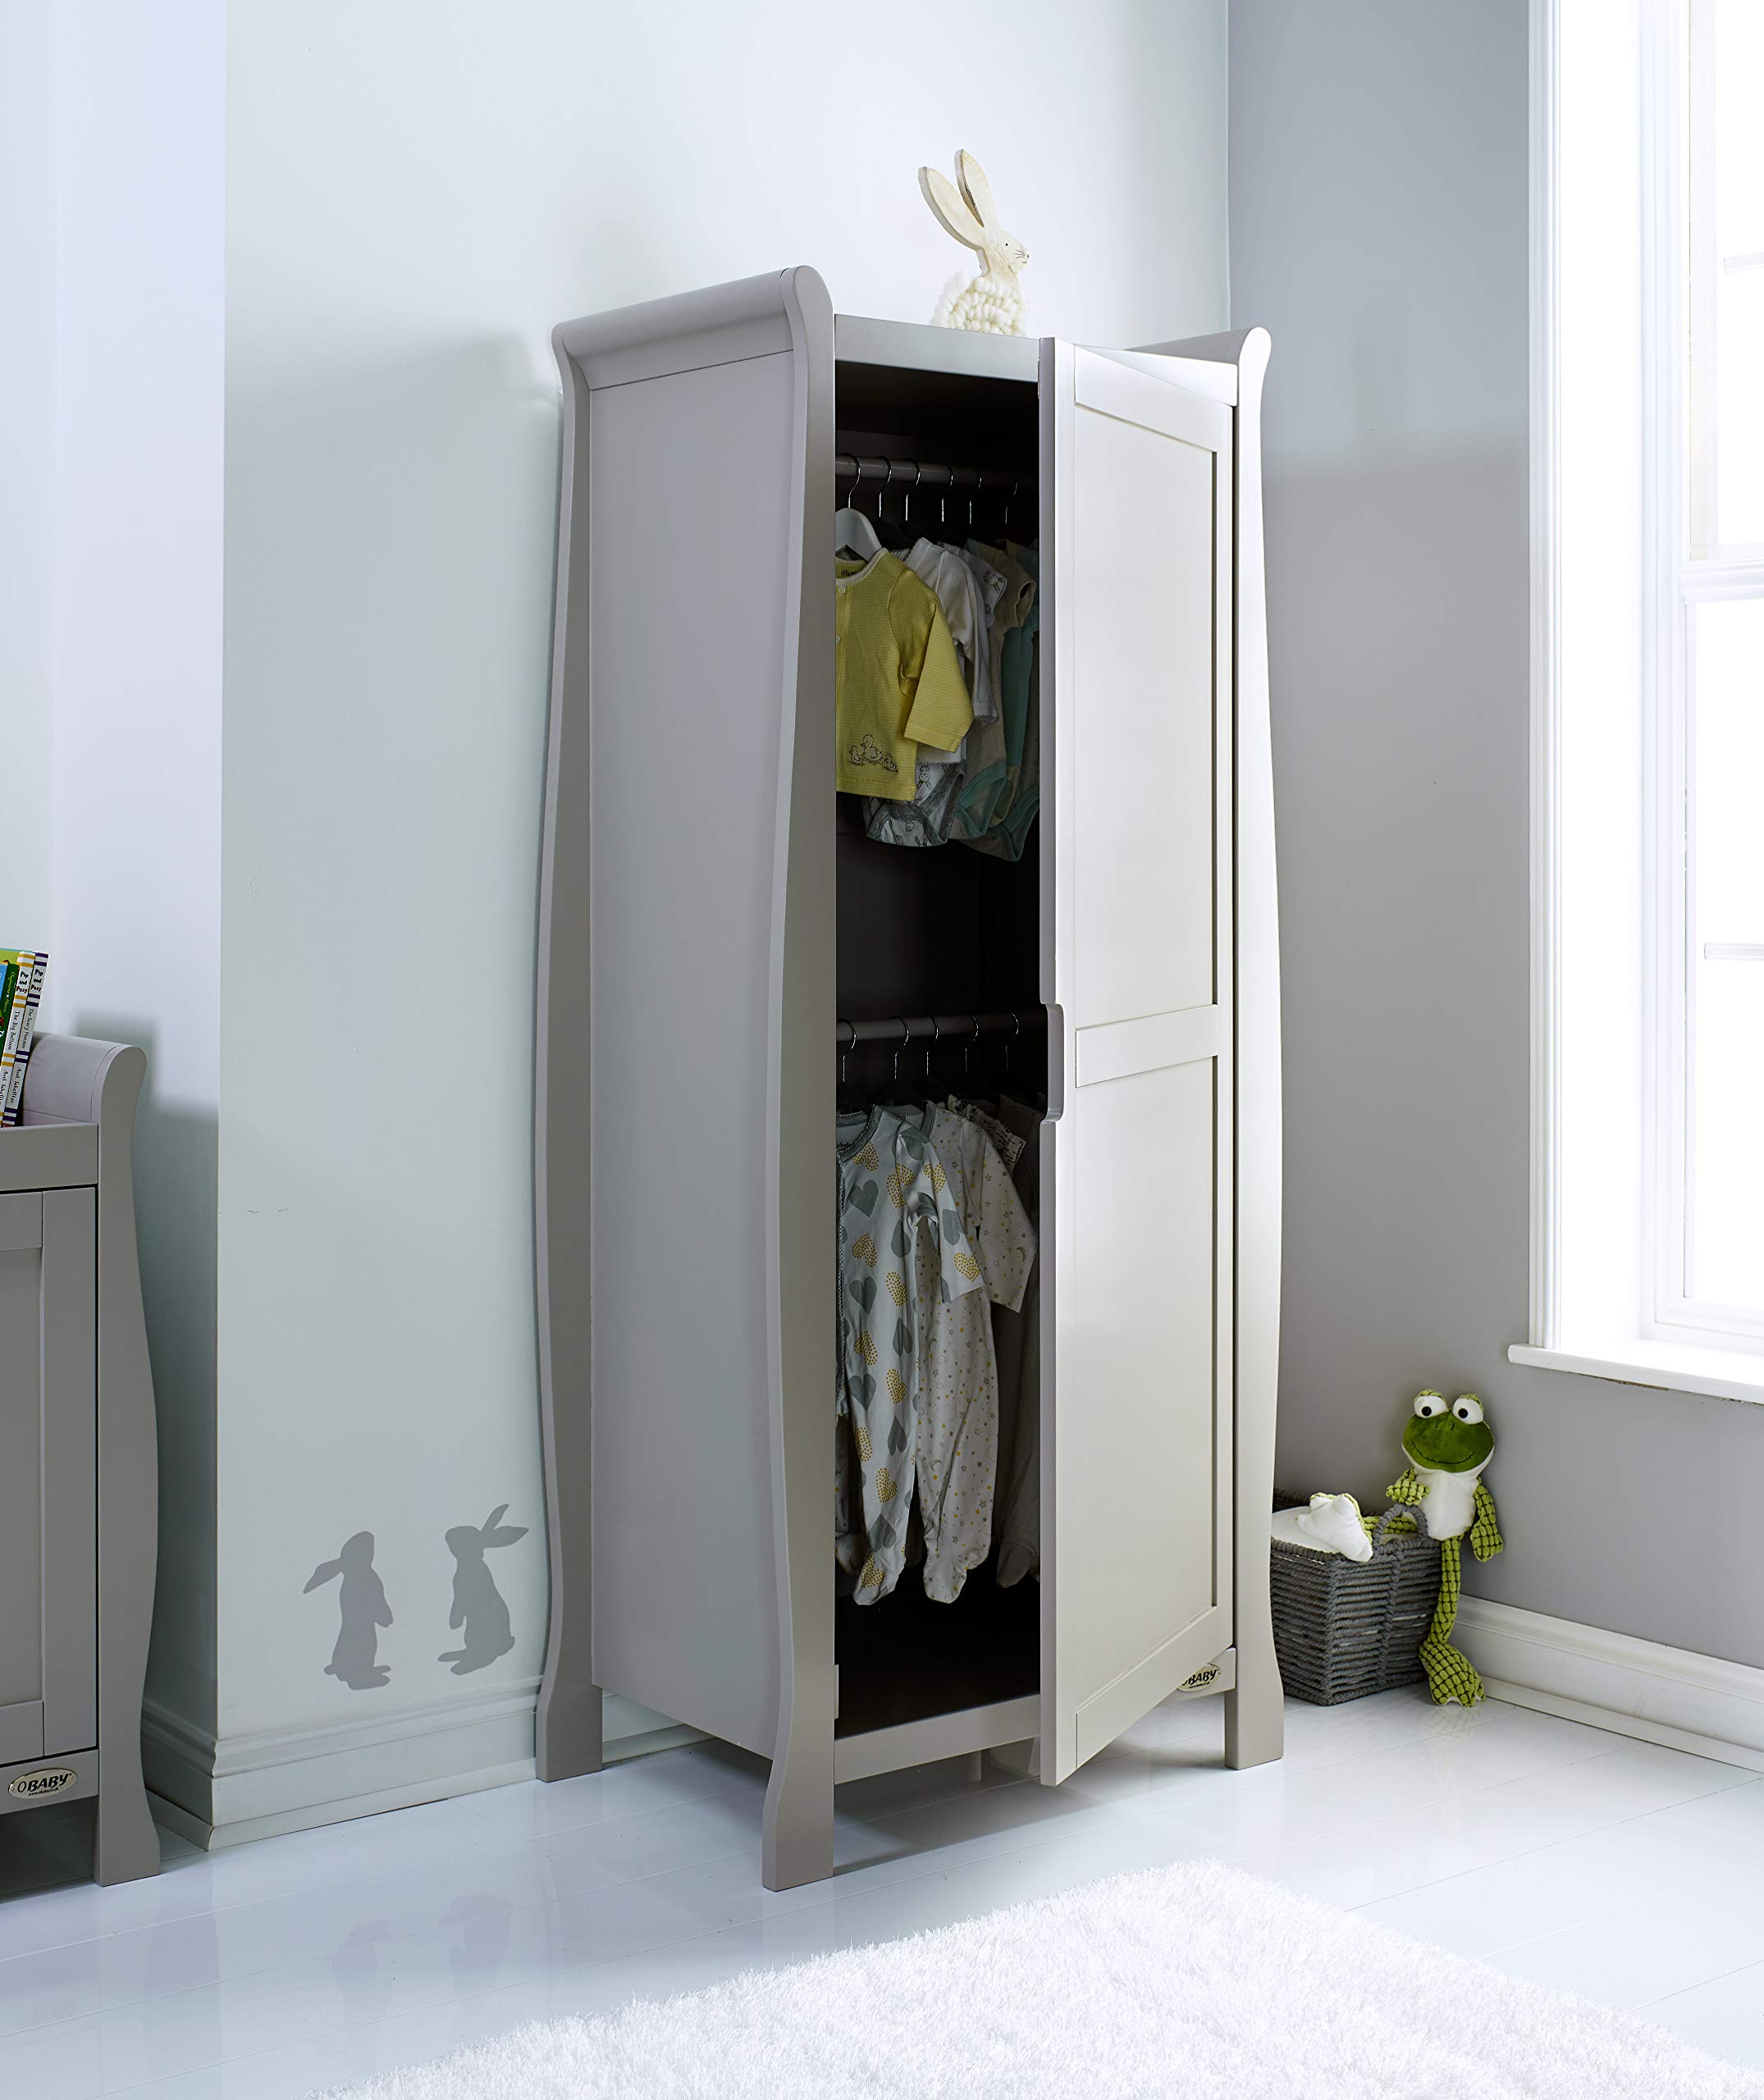 Obaby Stamford Sleigh Single Wardrobe - Taupe Grey Obaby One full height cupboard door Soft closing door 2 hanging rails ensure little ones clothes are kept neat and tidy 2